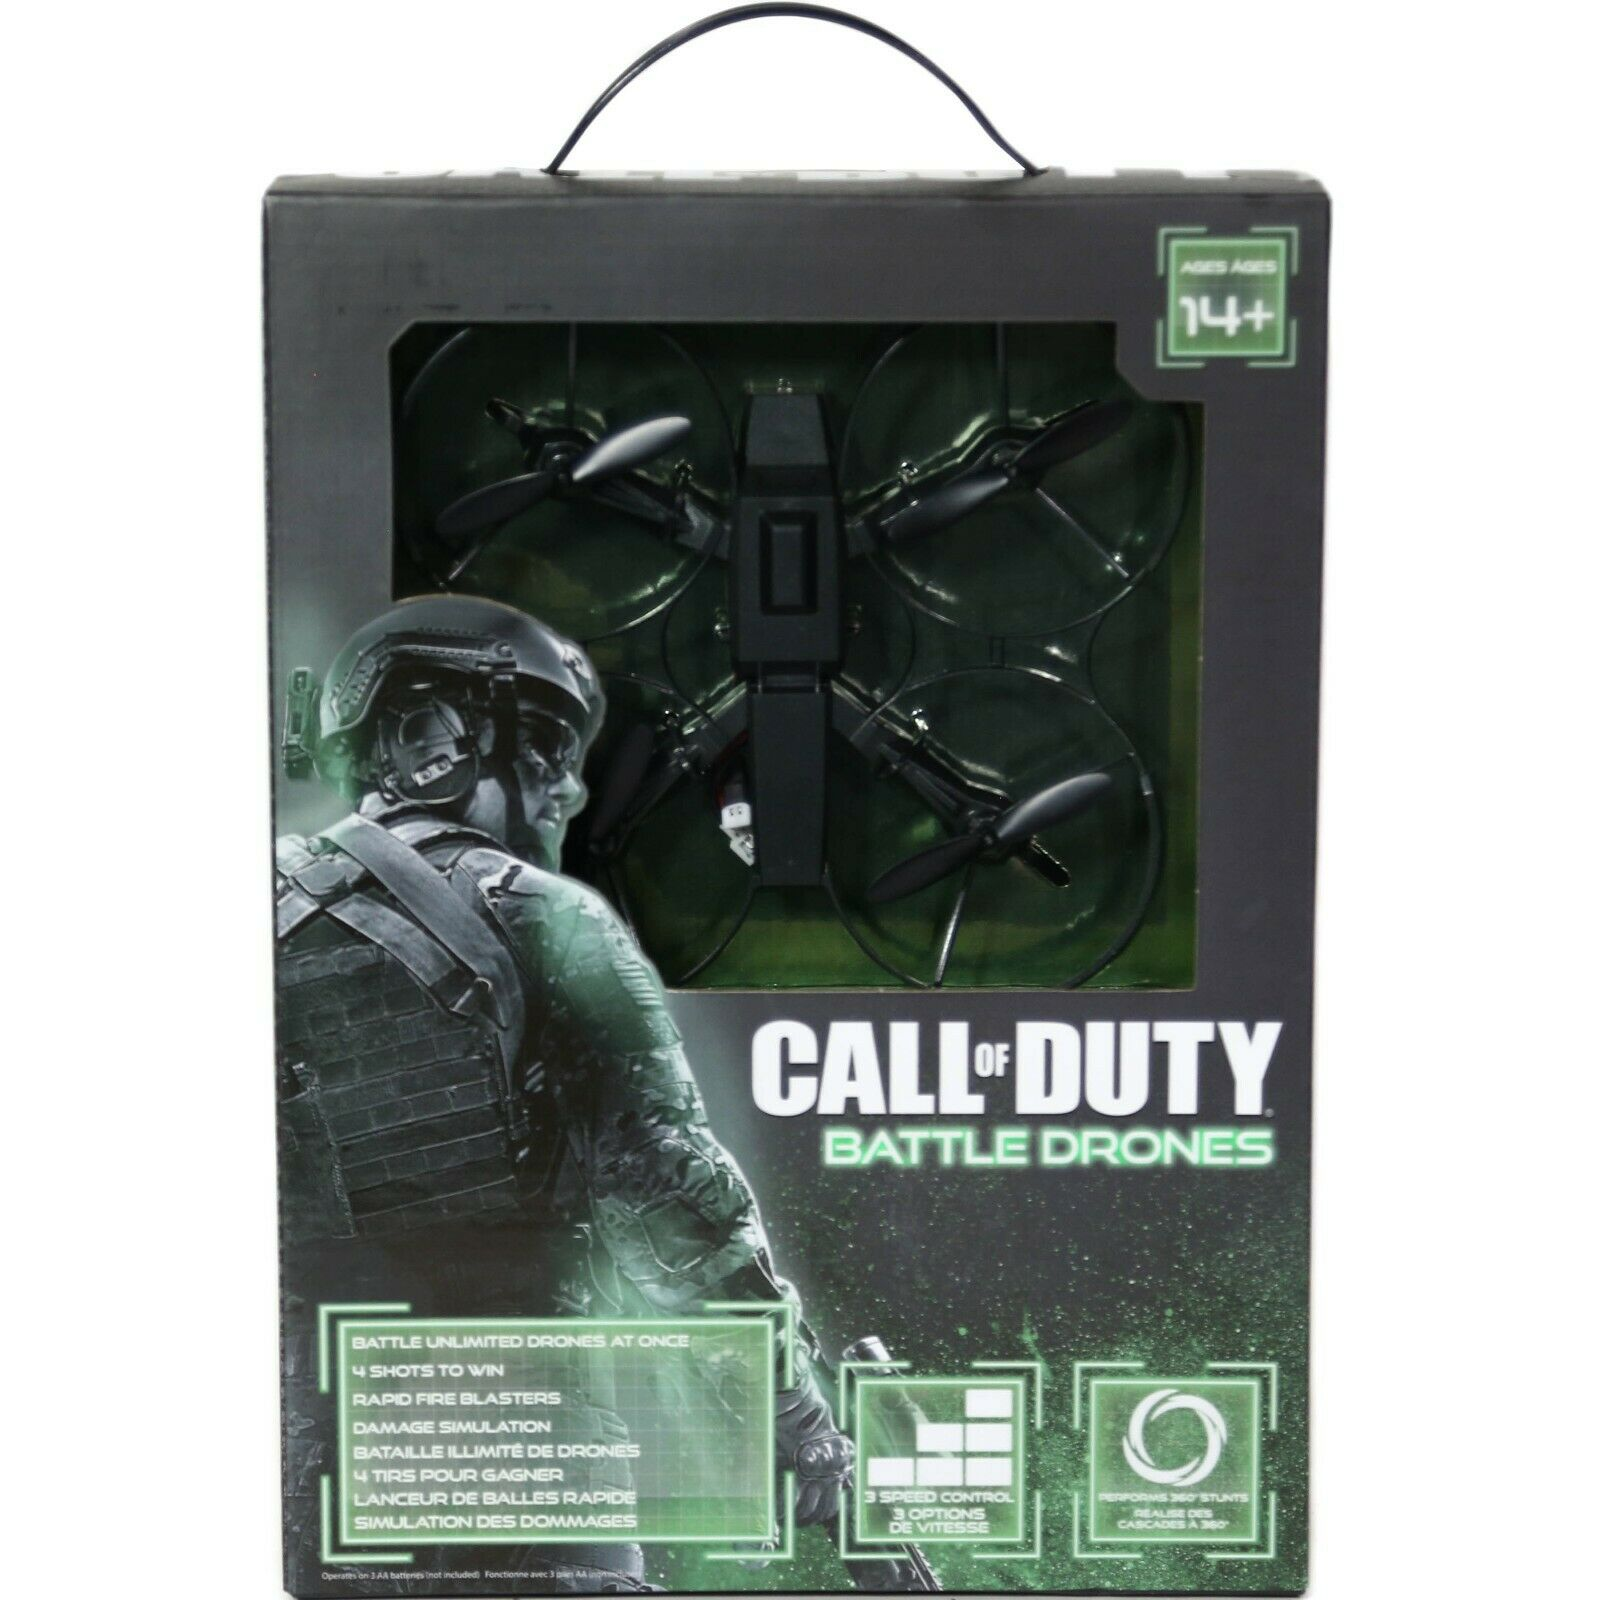 Call of Duty Battle Drone Aerial Black 360 Flip Roll Turn Toy Brand New Sealed